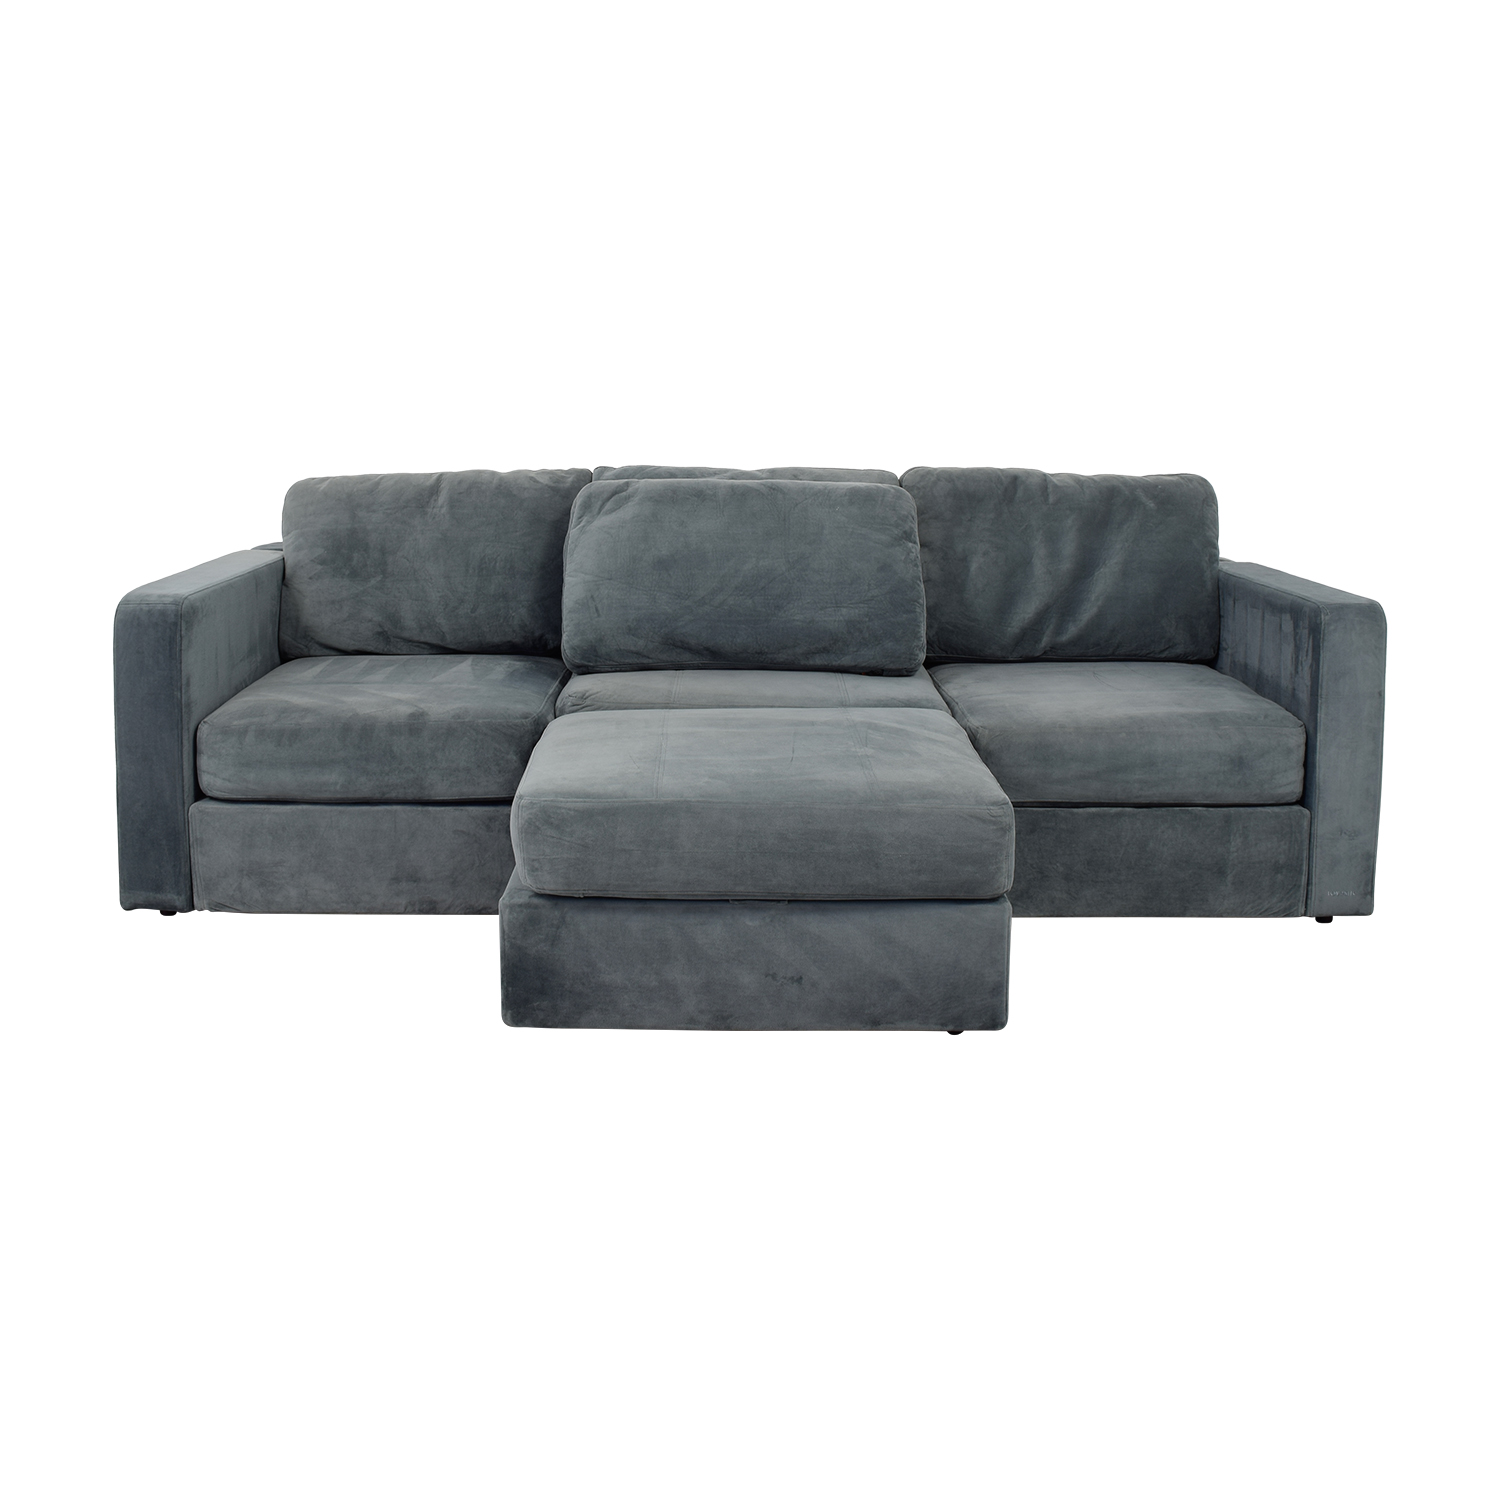 Lovesac Sofa Knock Off Review Home Co